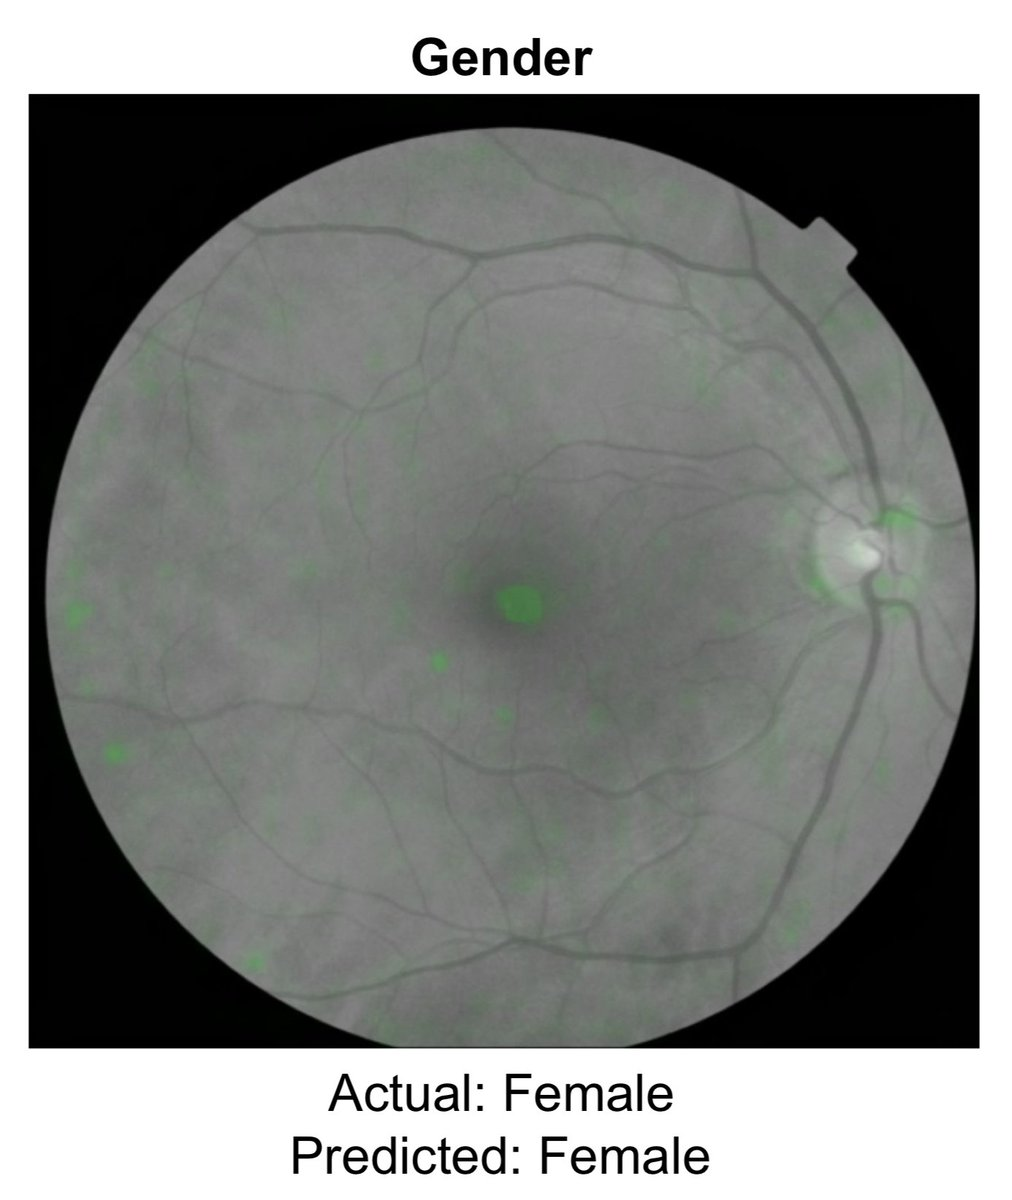 If an eye doctor looked at a retinal photo, the chance of getting gender correct would be 50-50. But deep learning training led to an AUC of 0.97  @pearsekeane pointed out how striking this is @JeffDean at a recent #AI @googleresearch meeting; dhttps://t.co/3nbFj35myta@natBMEt#OAa: